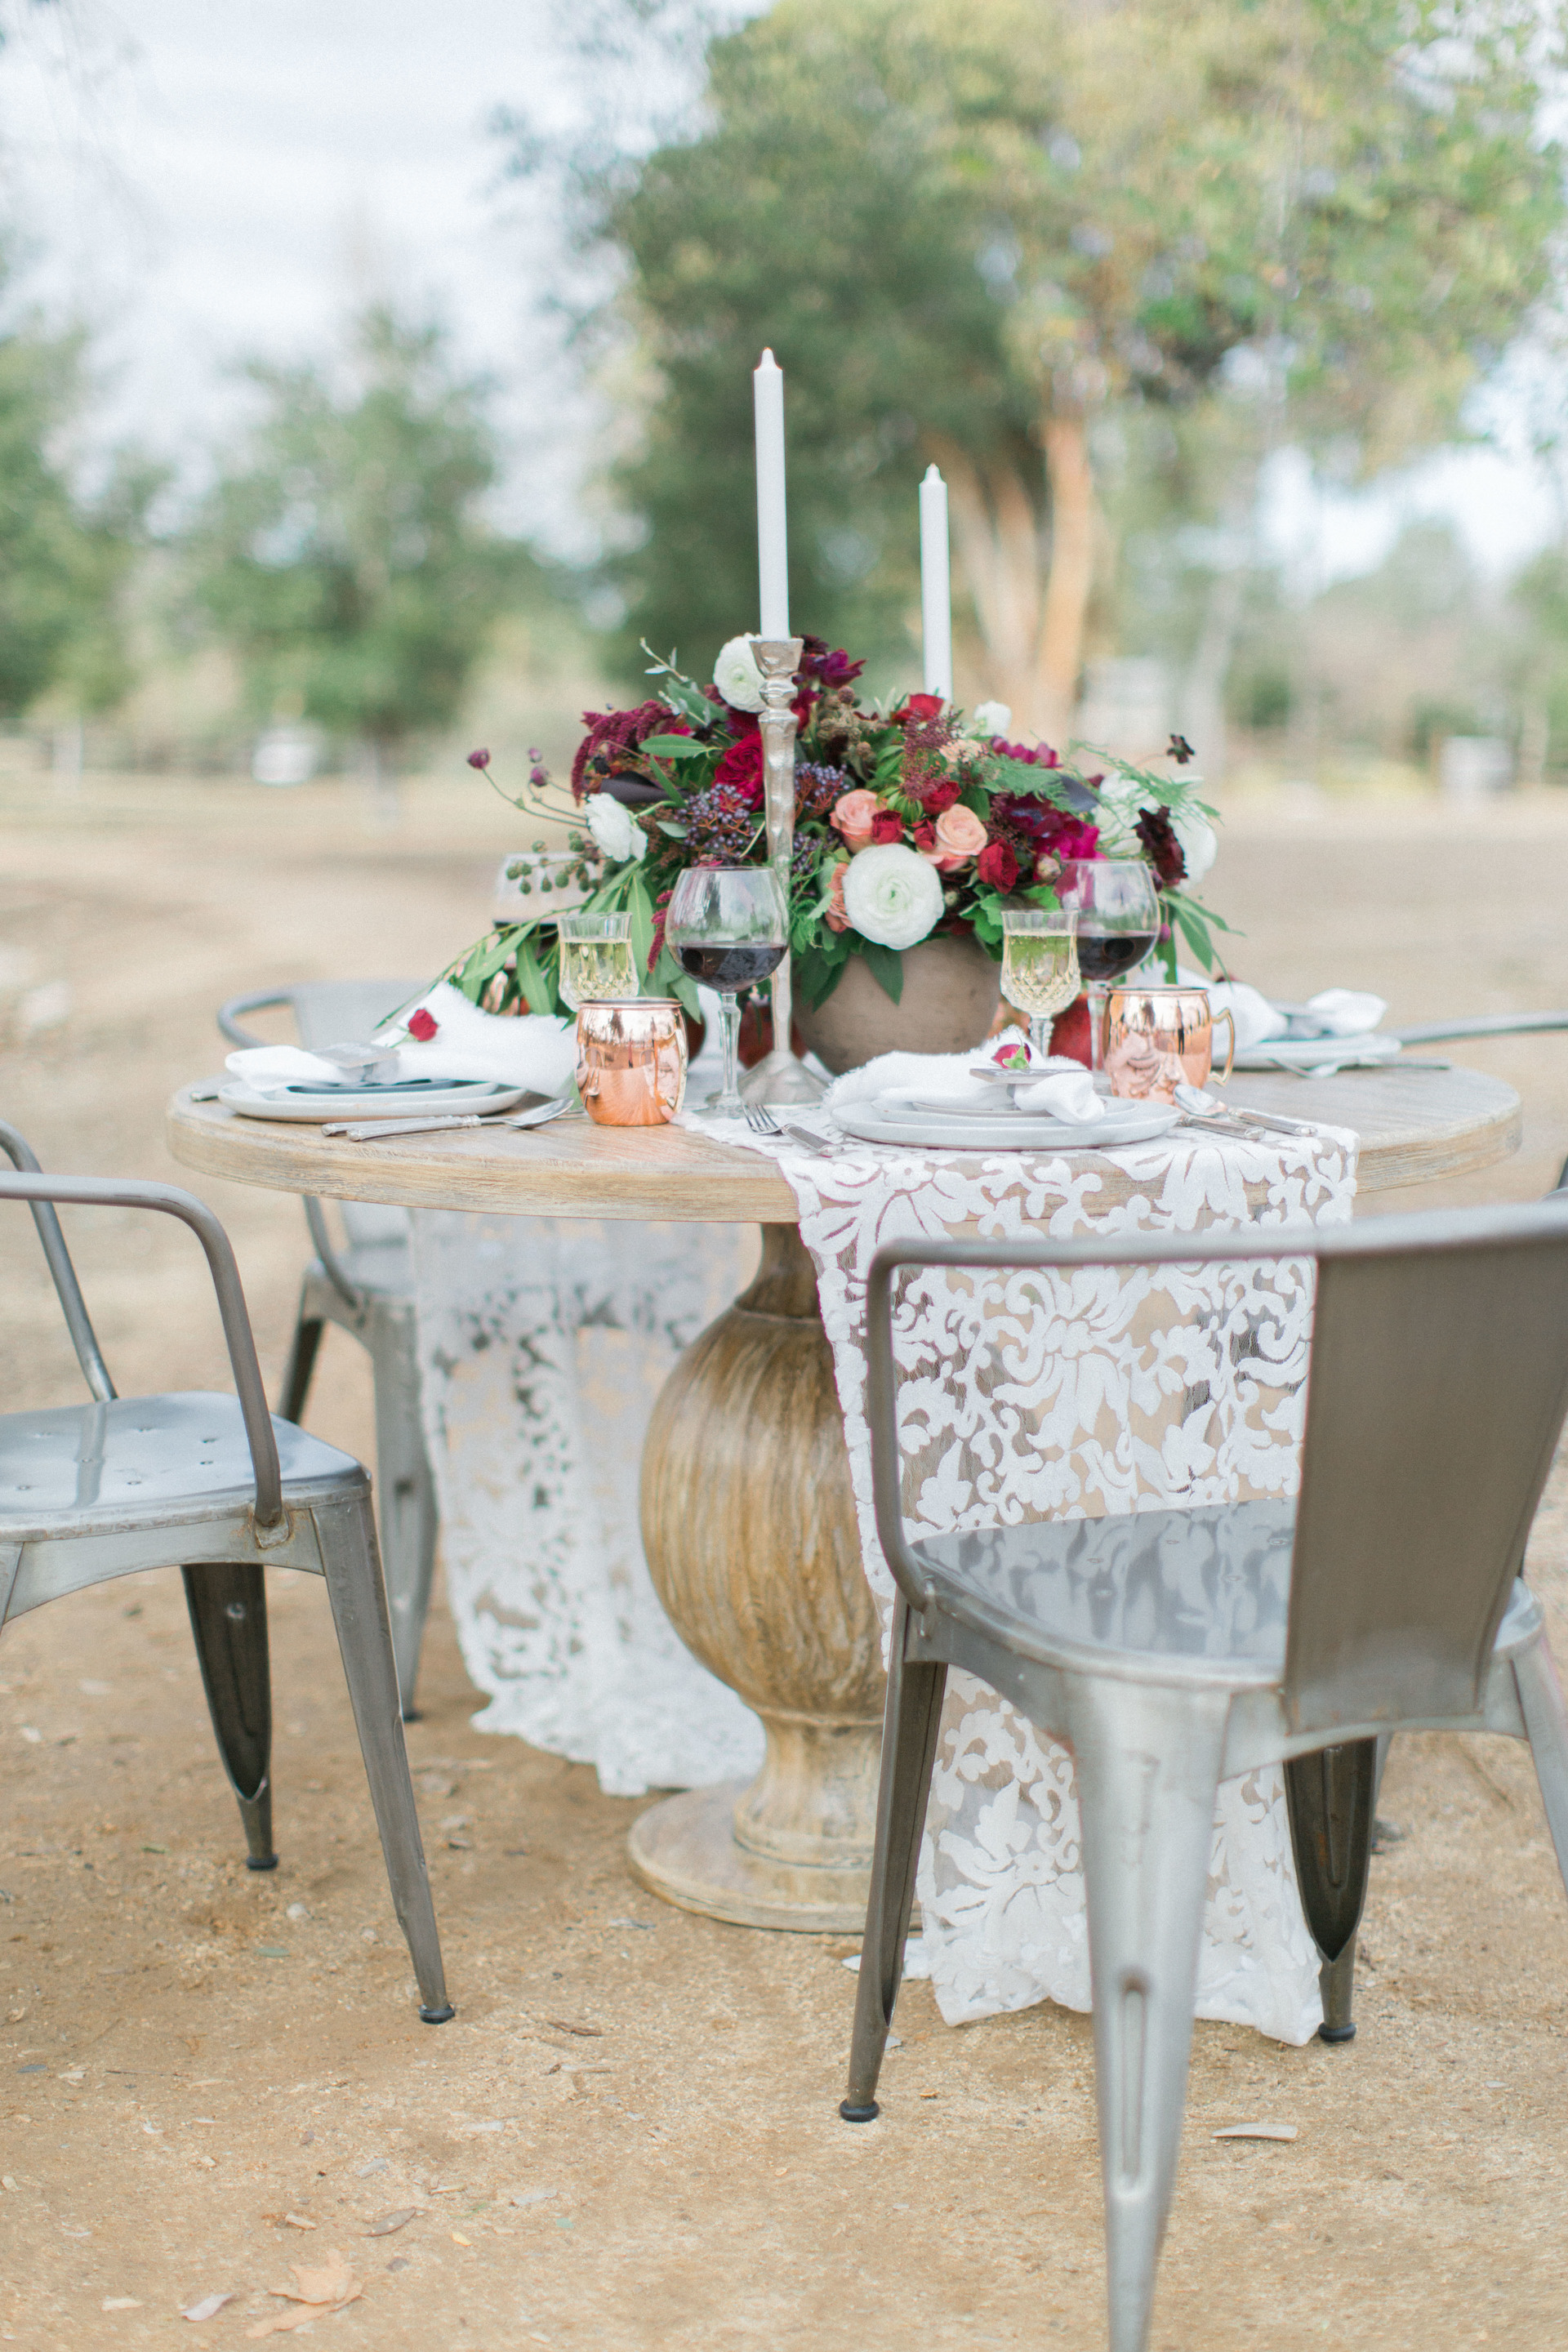 San Juan Capistrano Romantic Outdoor Styled Shoot // Lucky Day Events Co // Devon Donnahoo Photography // Burgundy and Merlot Colored Table Setting